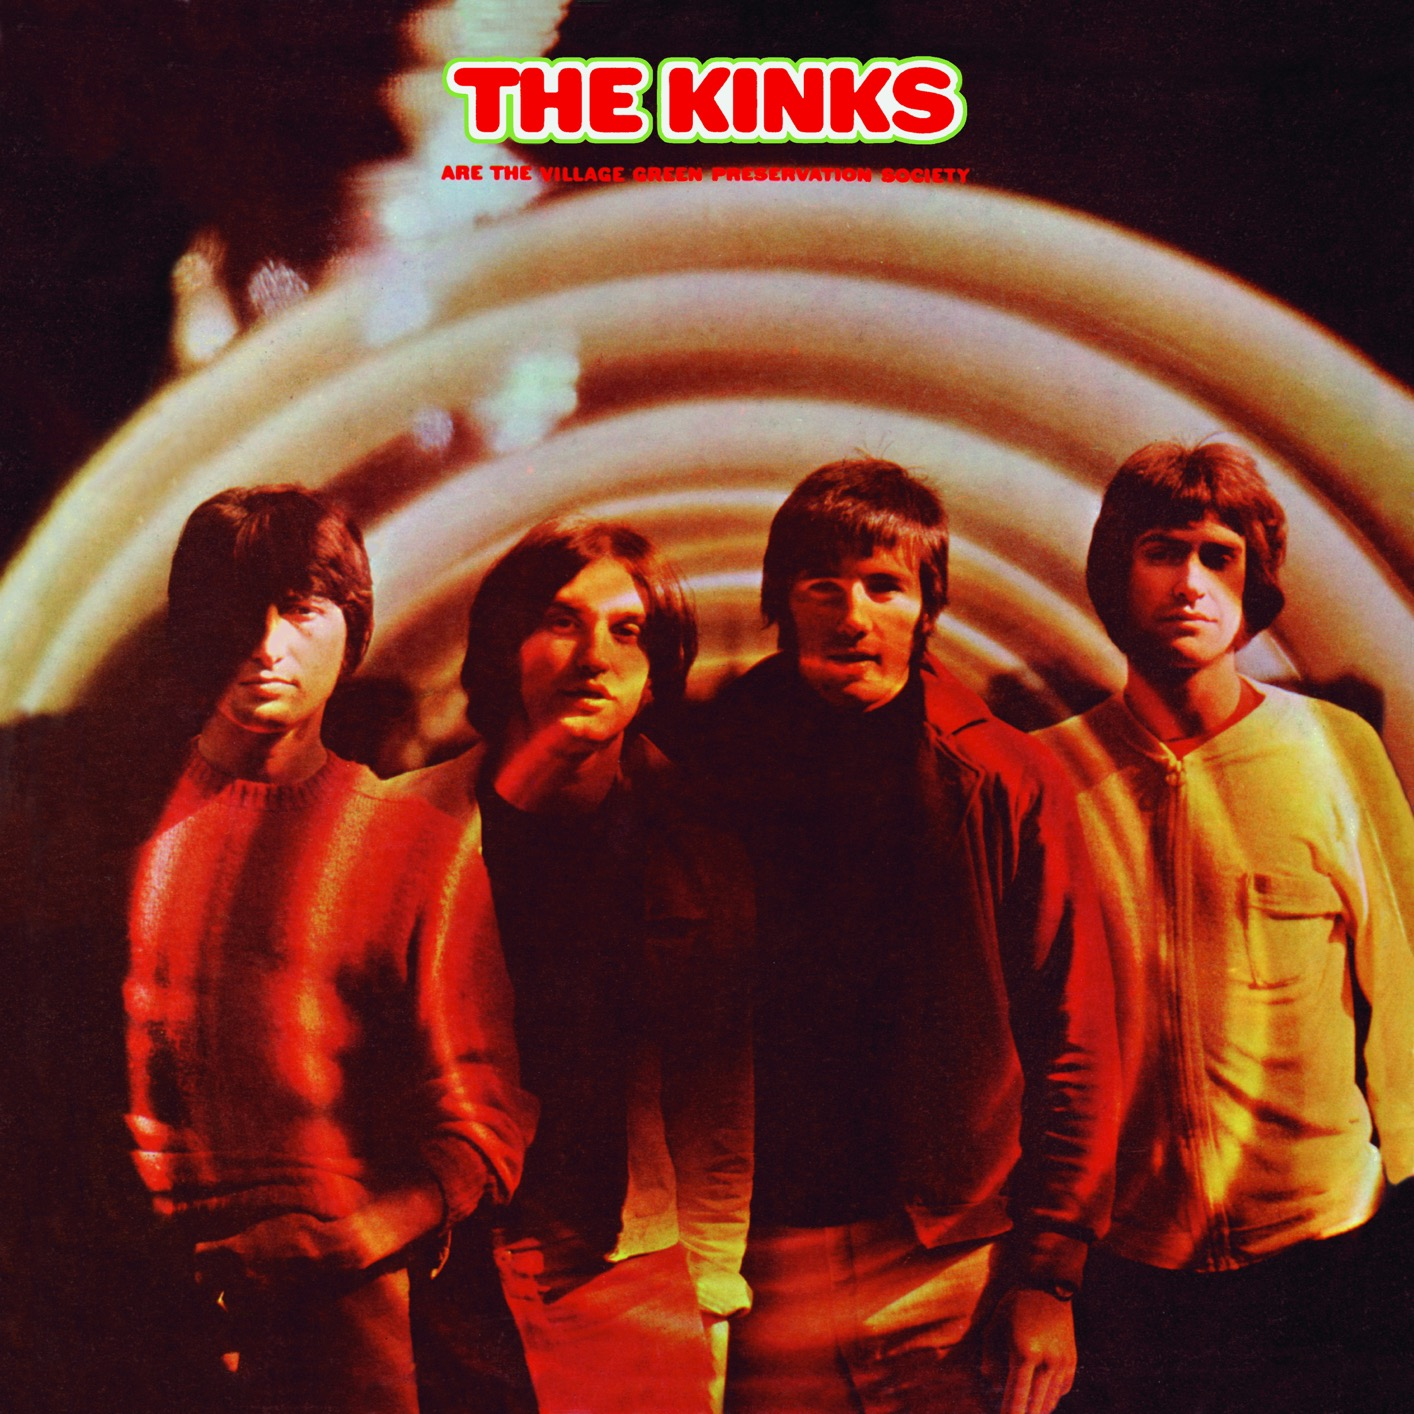 The Kinks - The Kinks Are The Village Green Preservation Society (2018 Stereo Remaster) (1968/2018) [Official Digital Download]